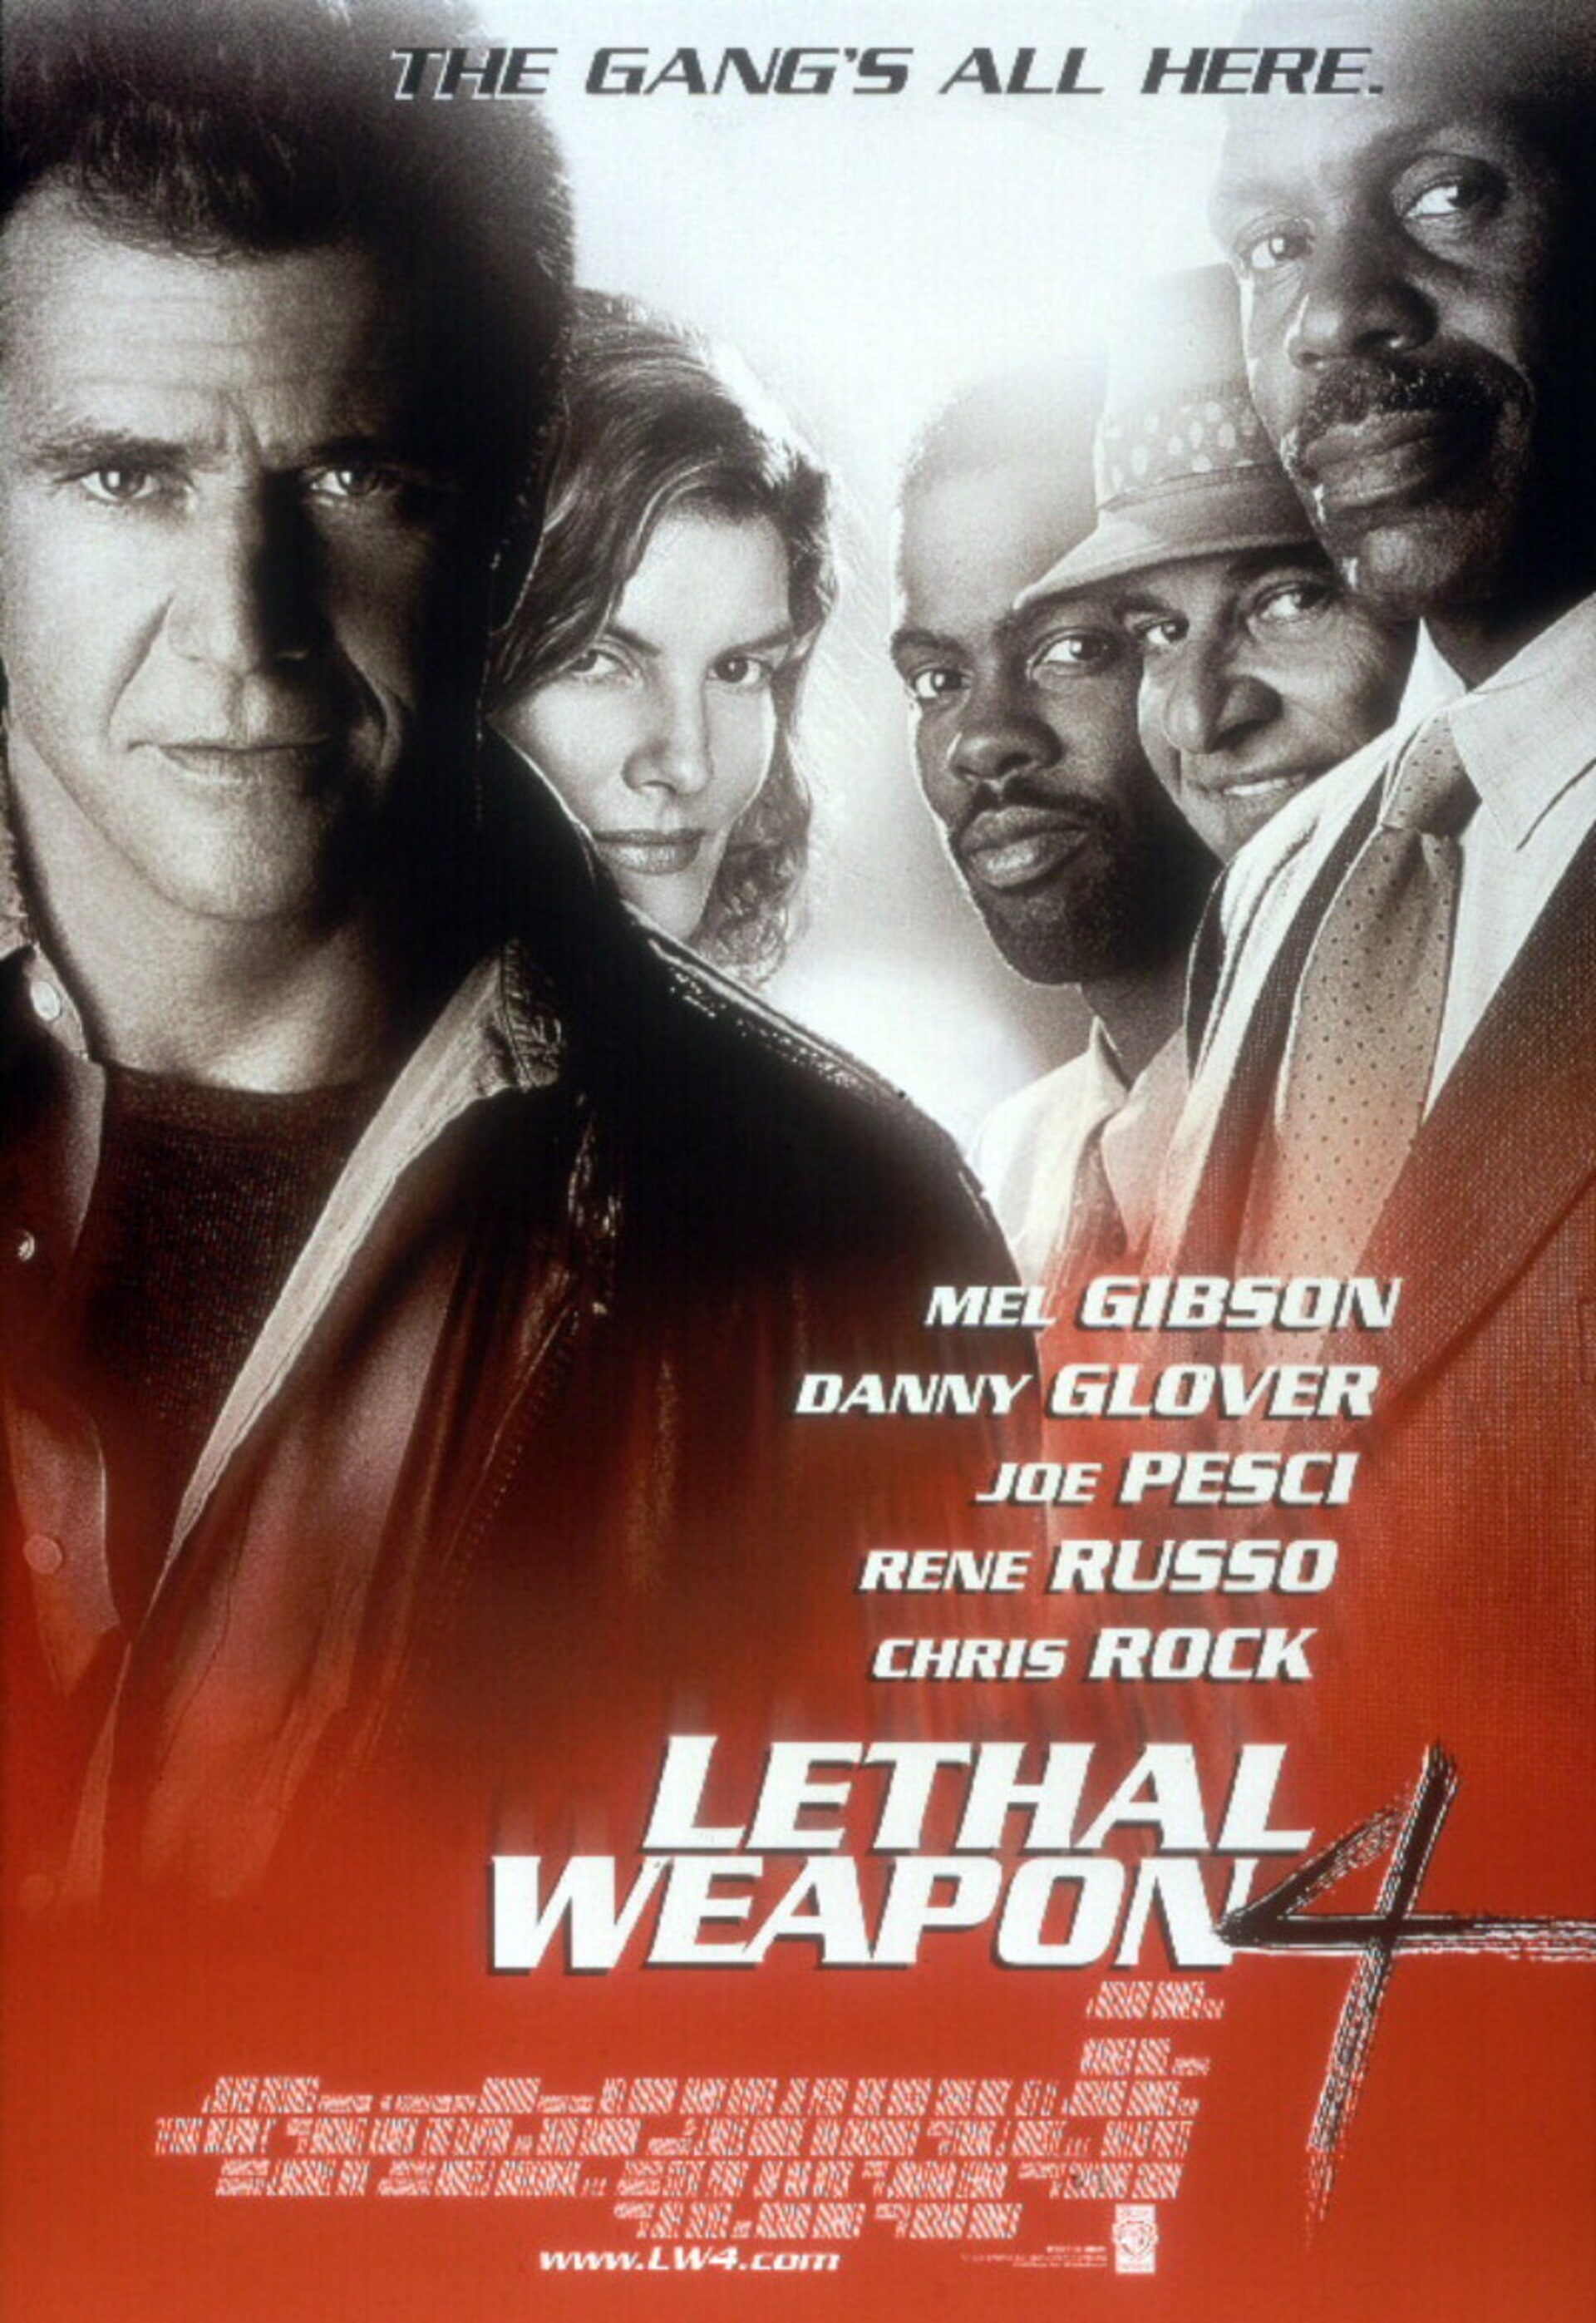 Lethal Weapon 4 - Poster 1